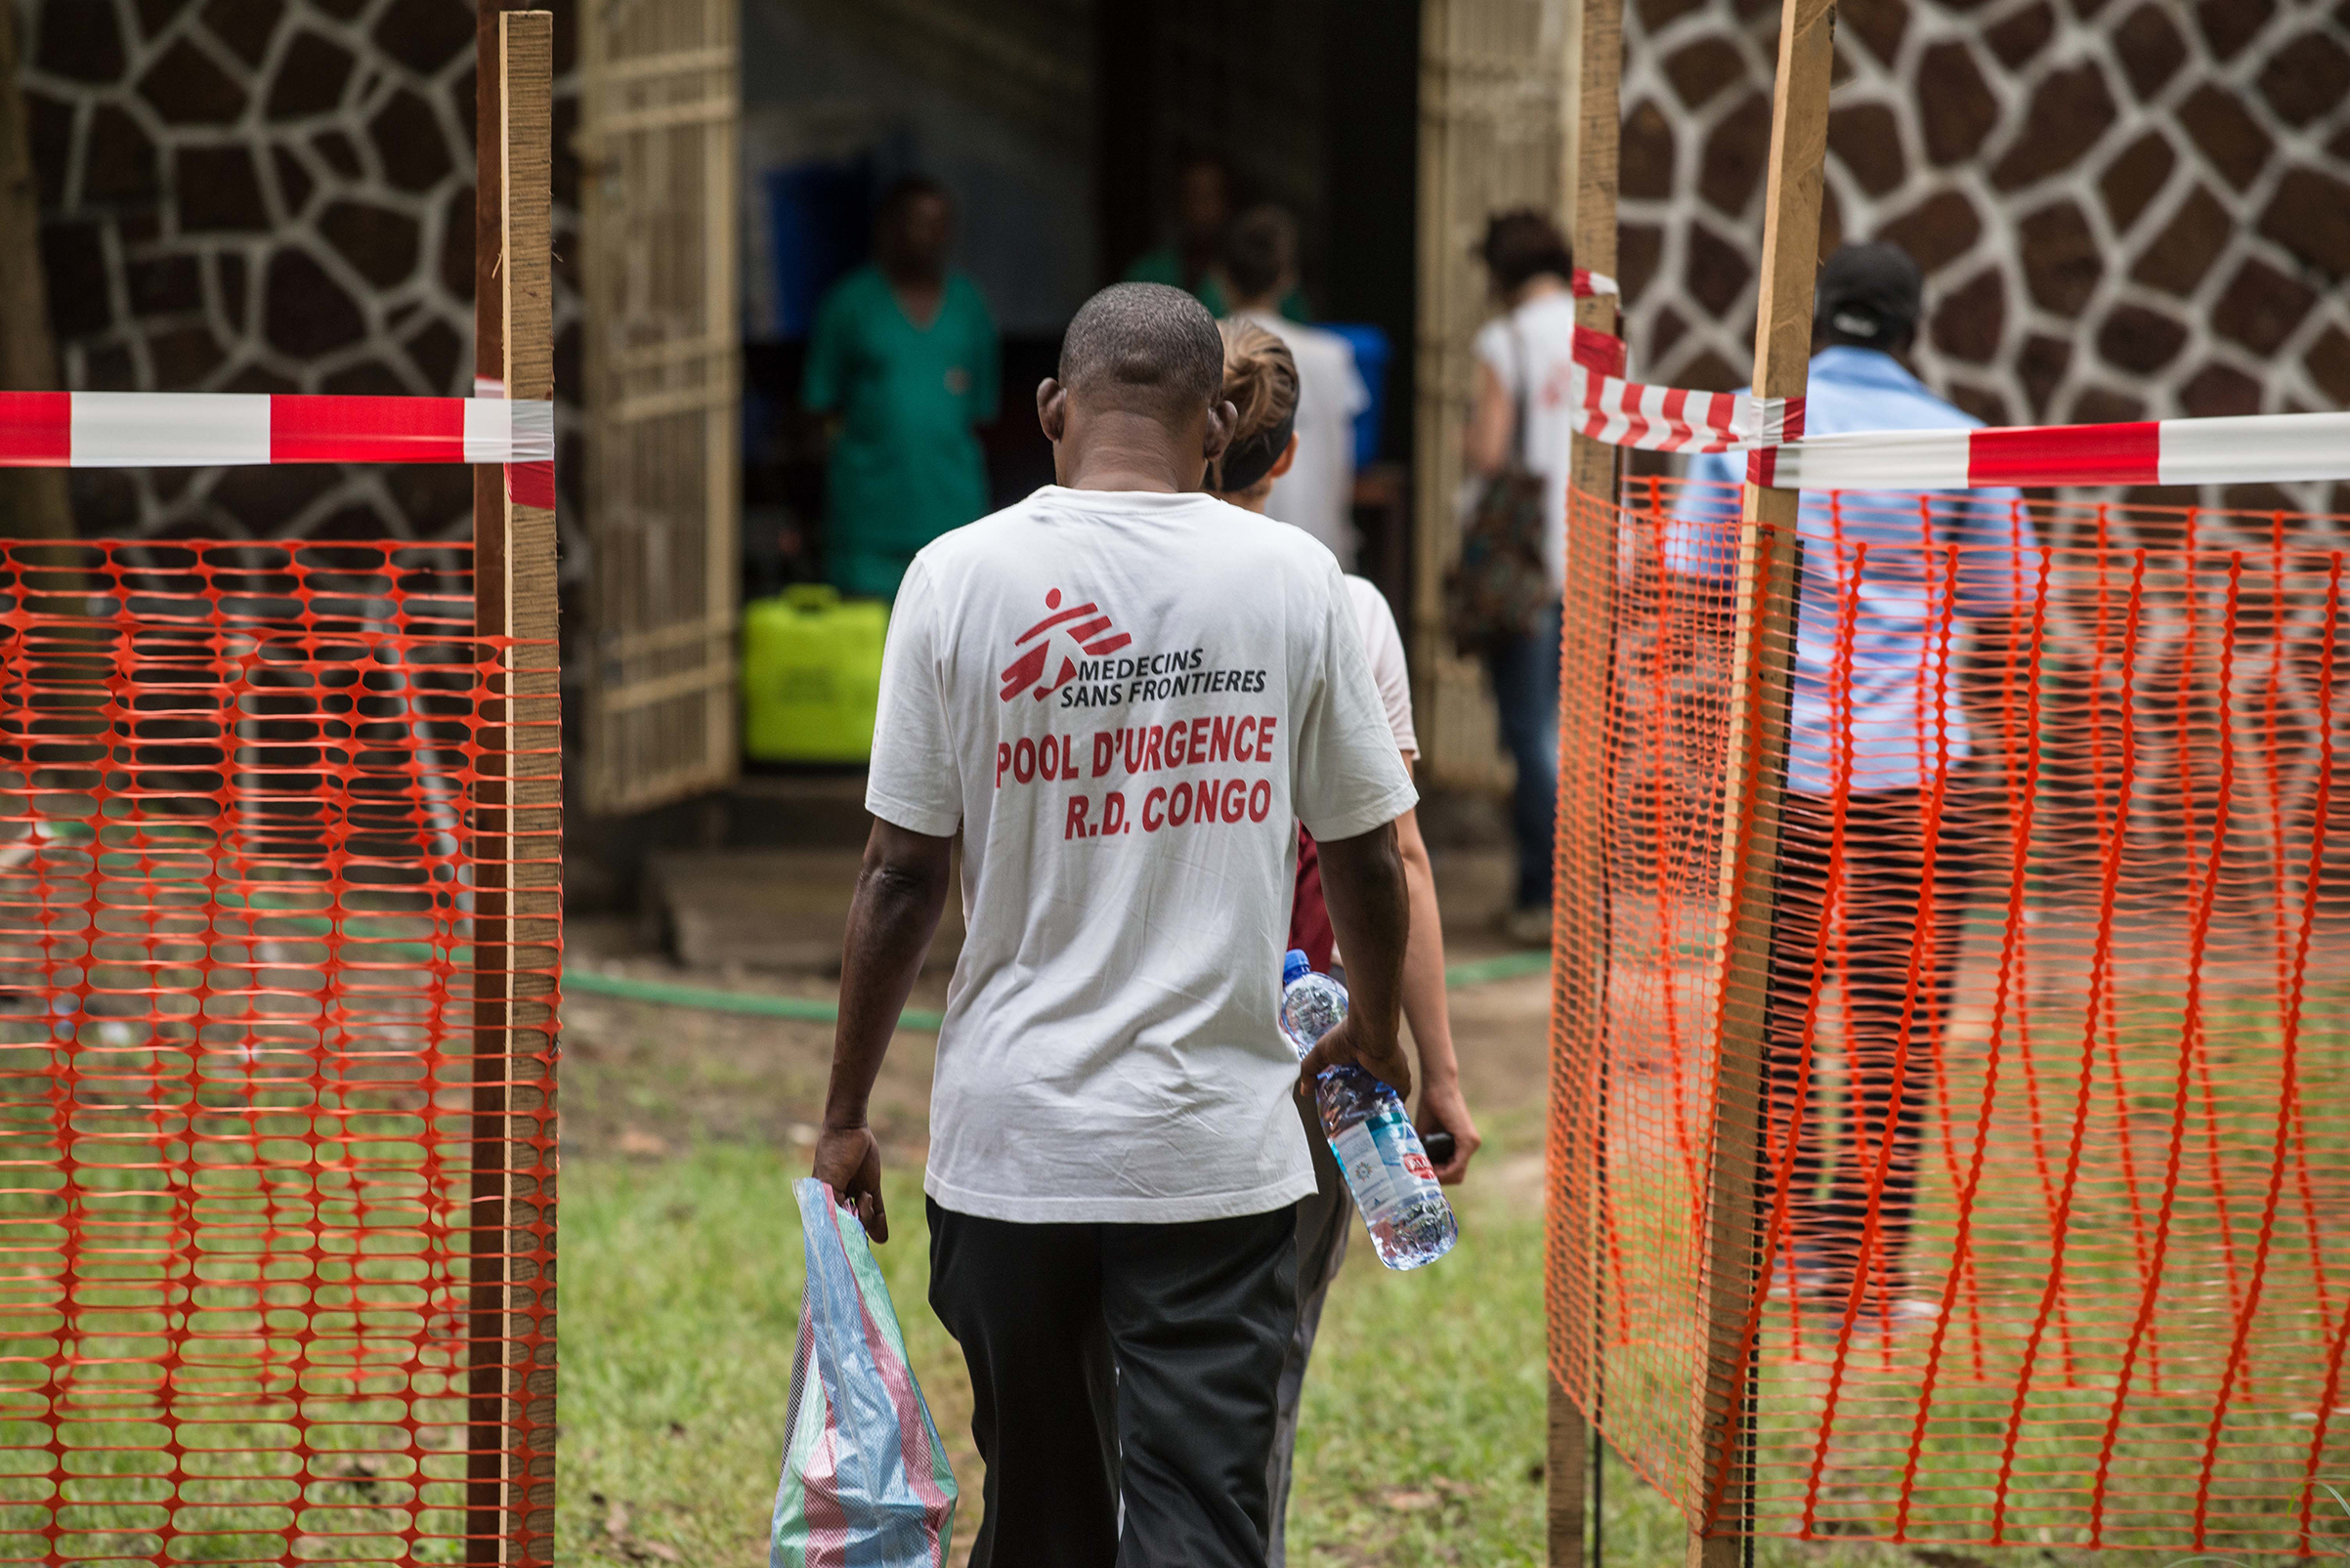 Médecins sans frontière team members walk through an Ebola security zone in Mbandaka, Democratic Republic of Congo, on May 20, 2018